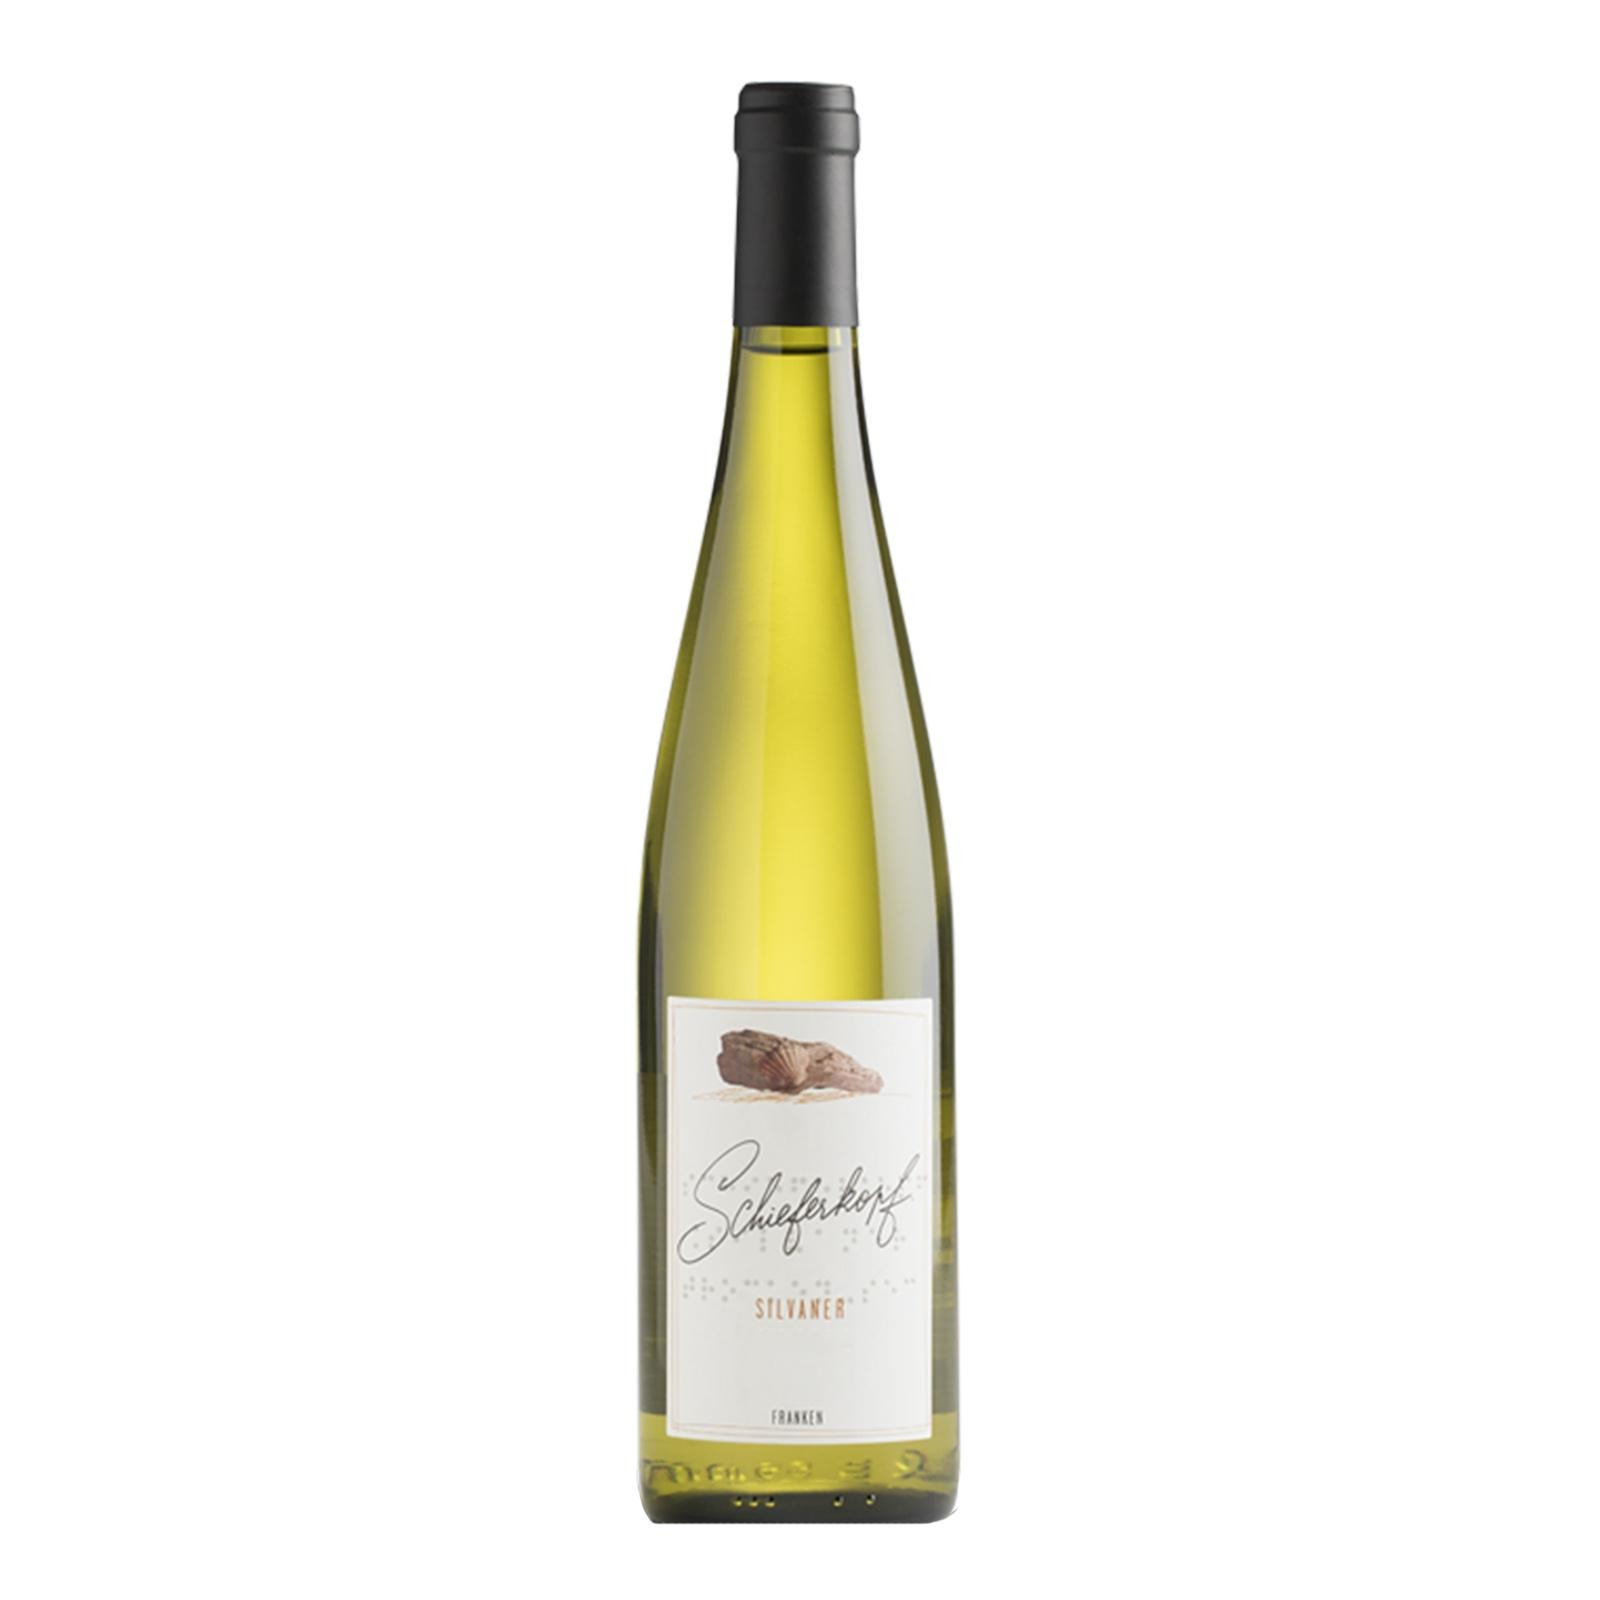 M. Chapoutier Schieferkopf Sylvaner-By Culina